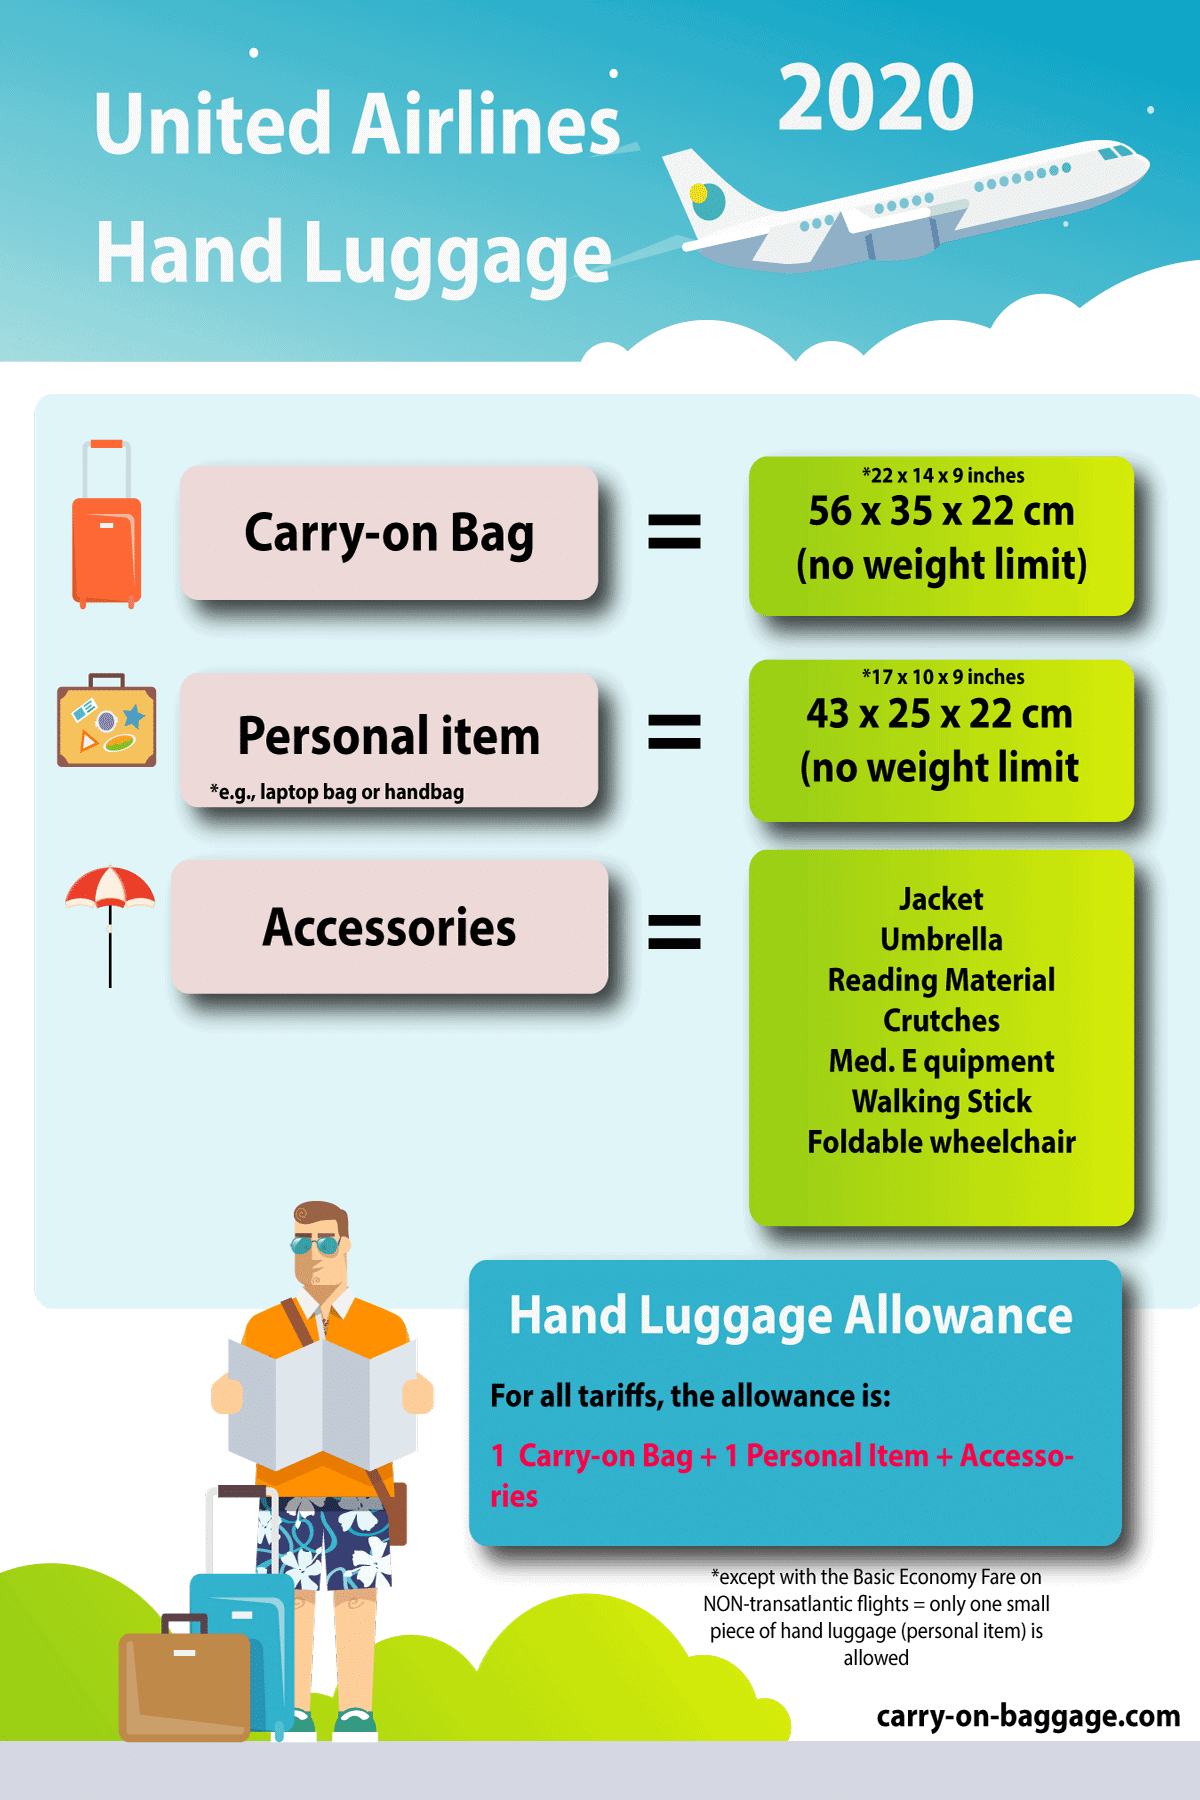 United Airlines Hand Luggage Allowance 2020